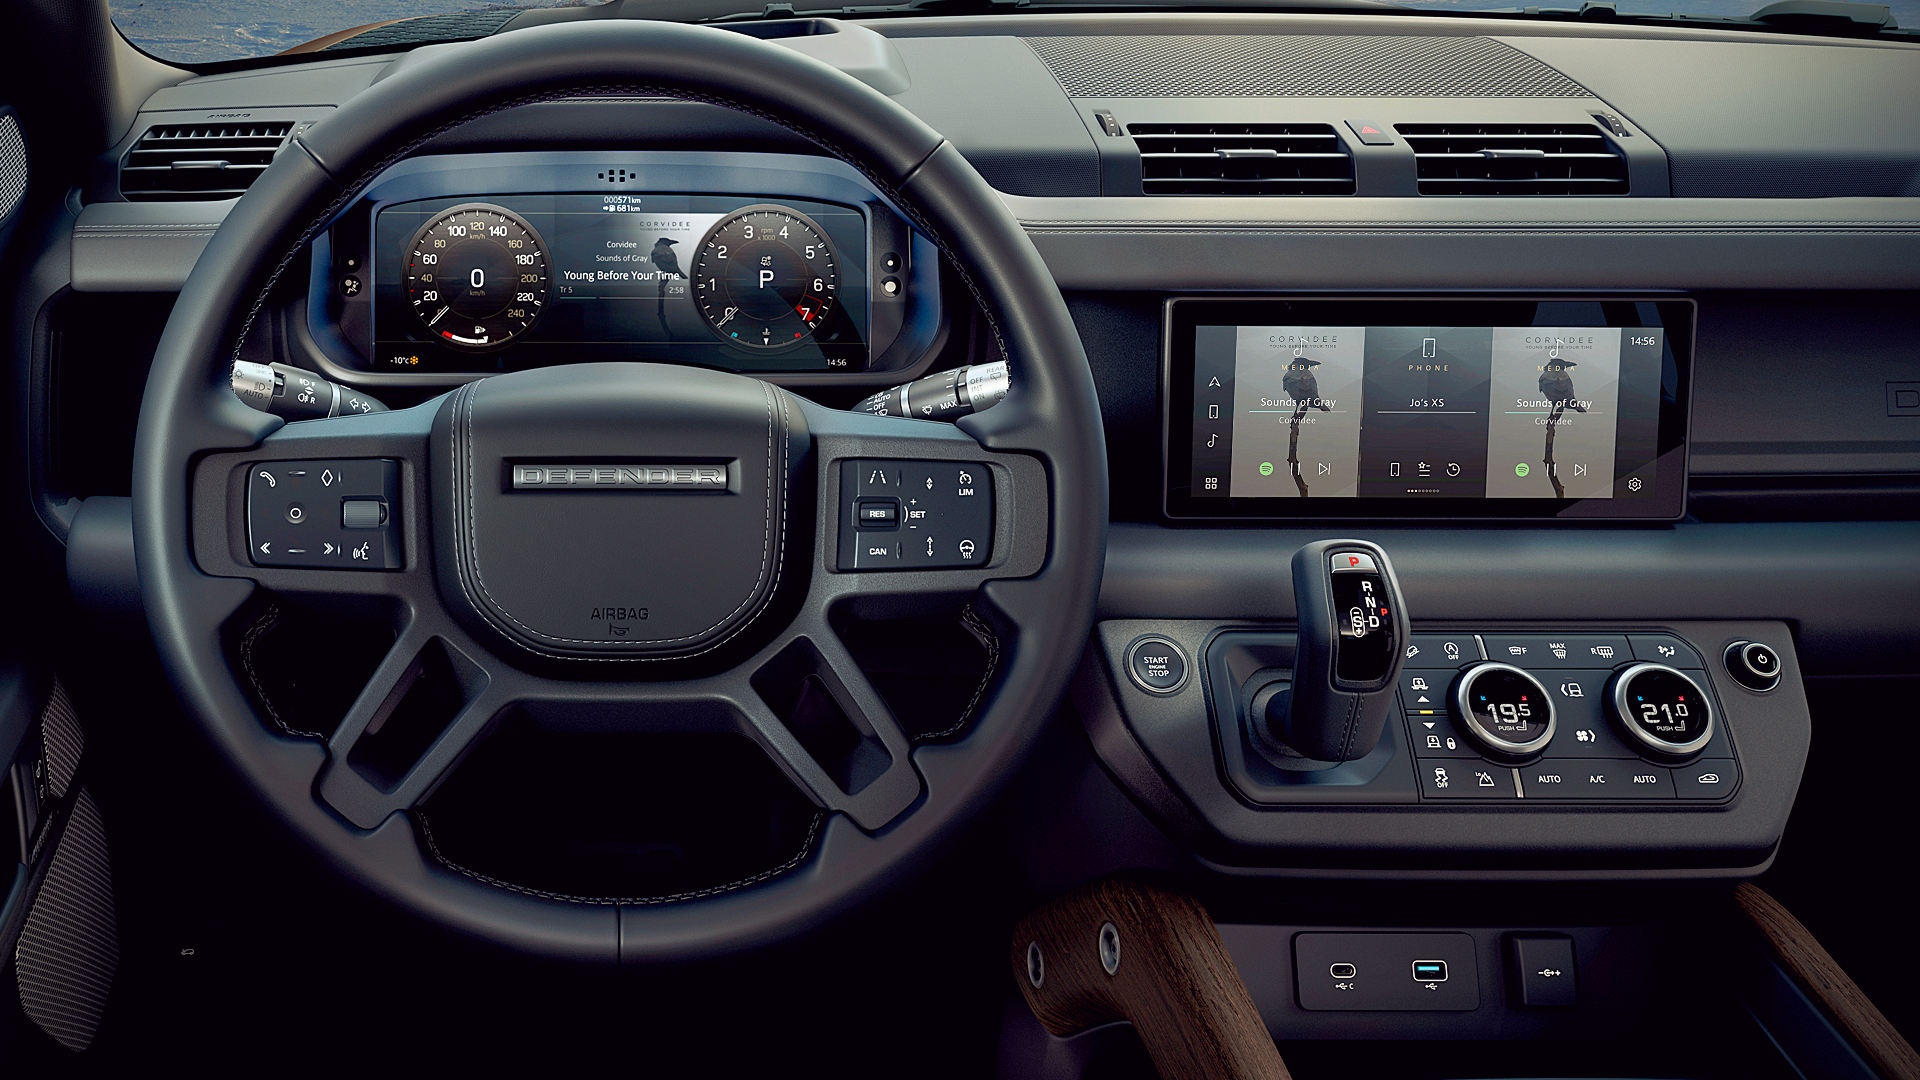 2020 Land Rover Defender 110 Interior Pictures